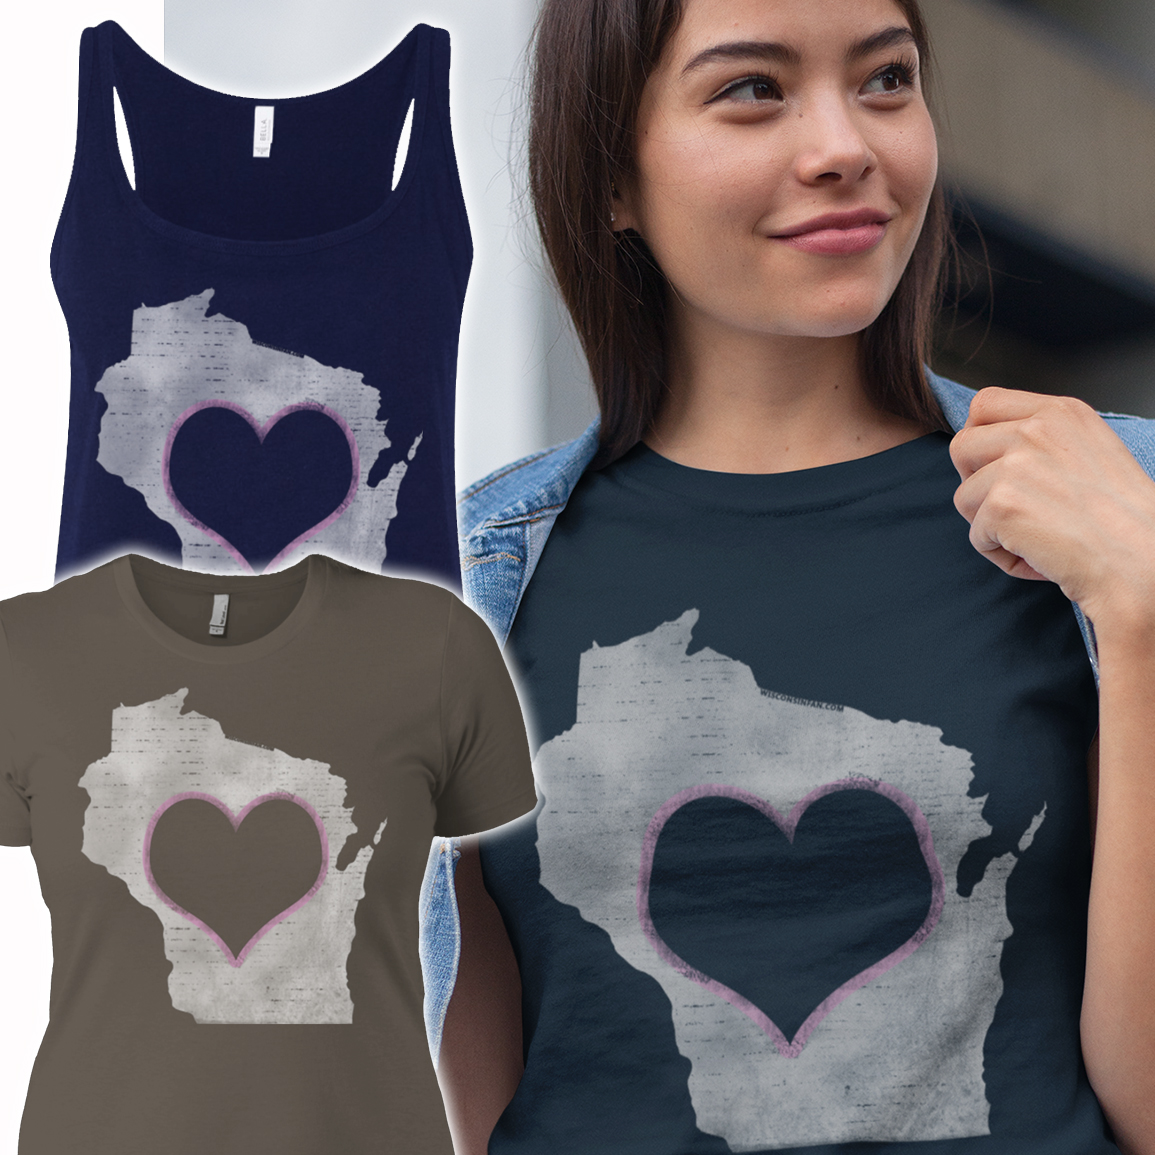 wisconsin-home-state-apparel-womens-tshirts